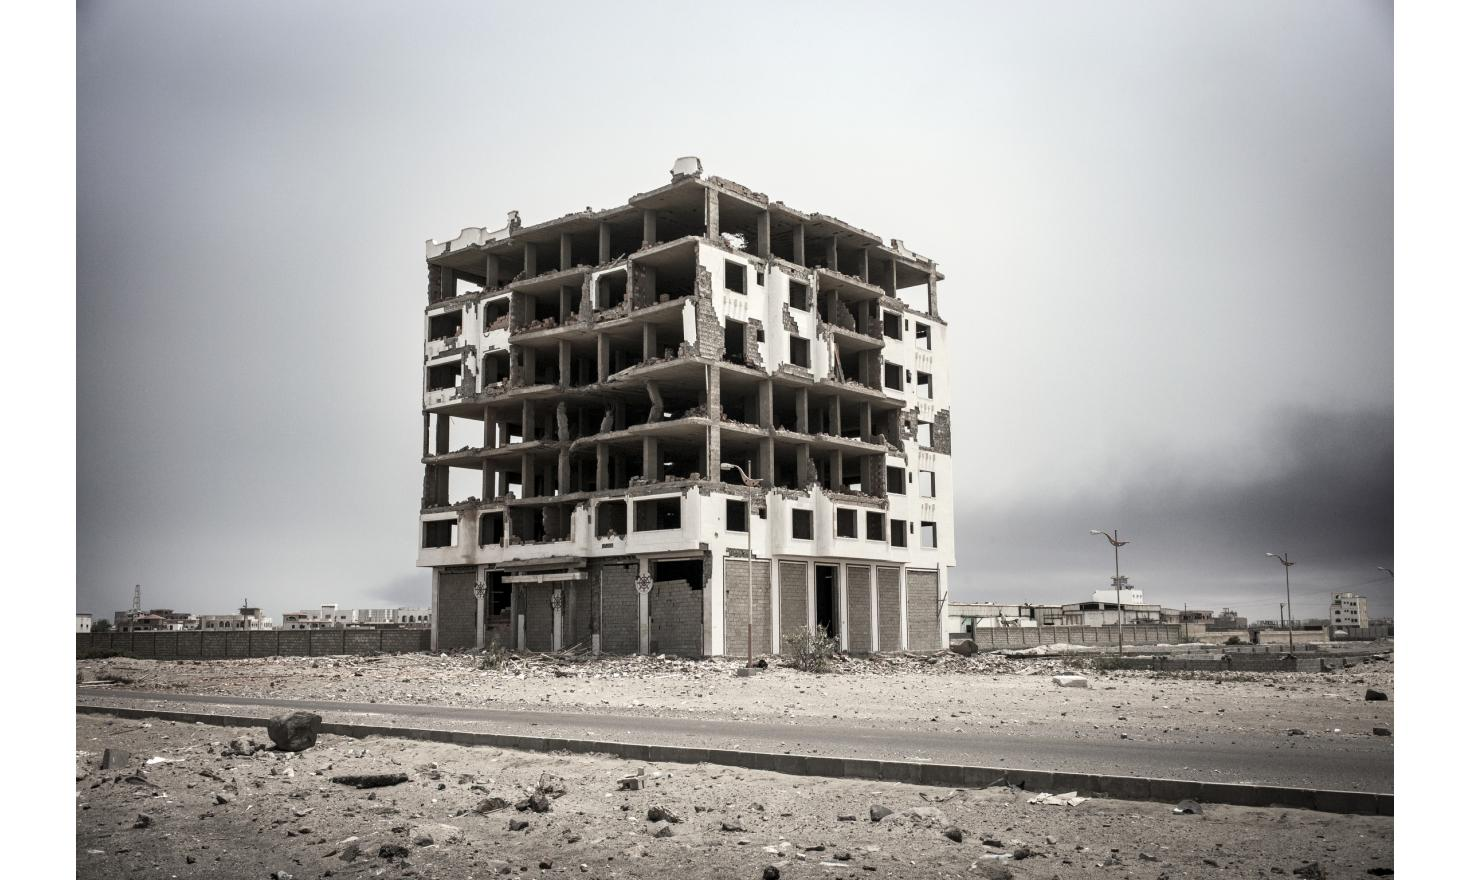 Once a bustling port in Yemen, Aden has been reduced to rubble, ravaged by the incessant shelling of the Houthi militia that has the city surrounded. 07/15